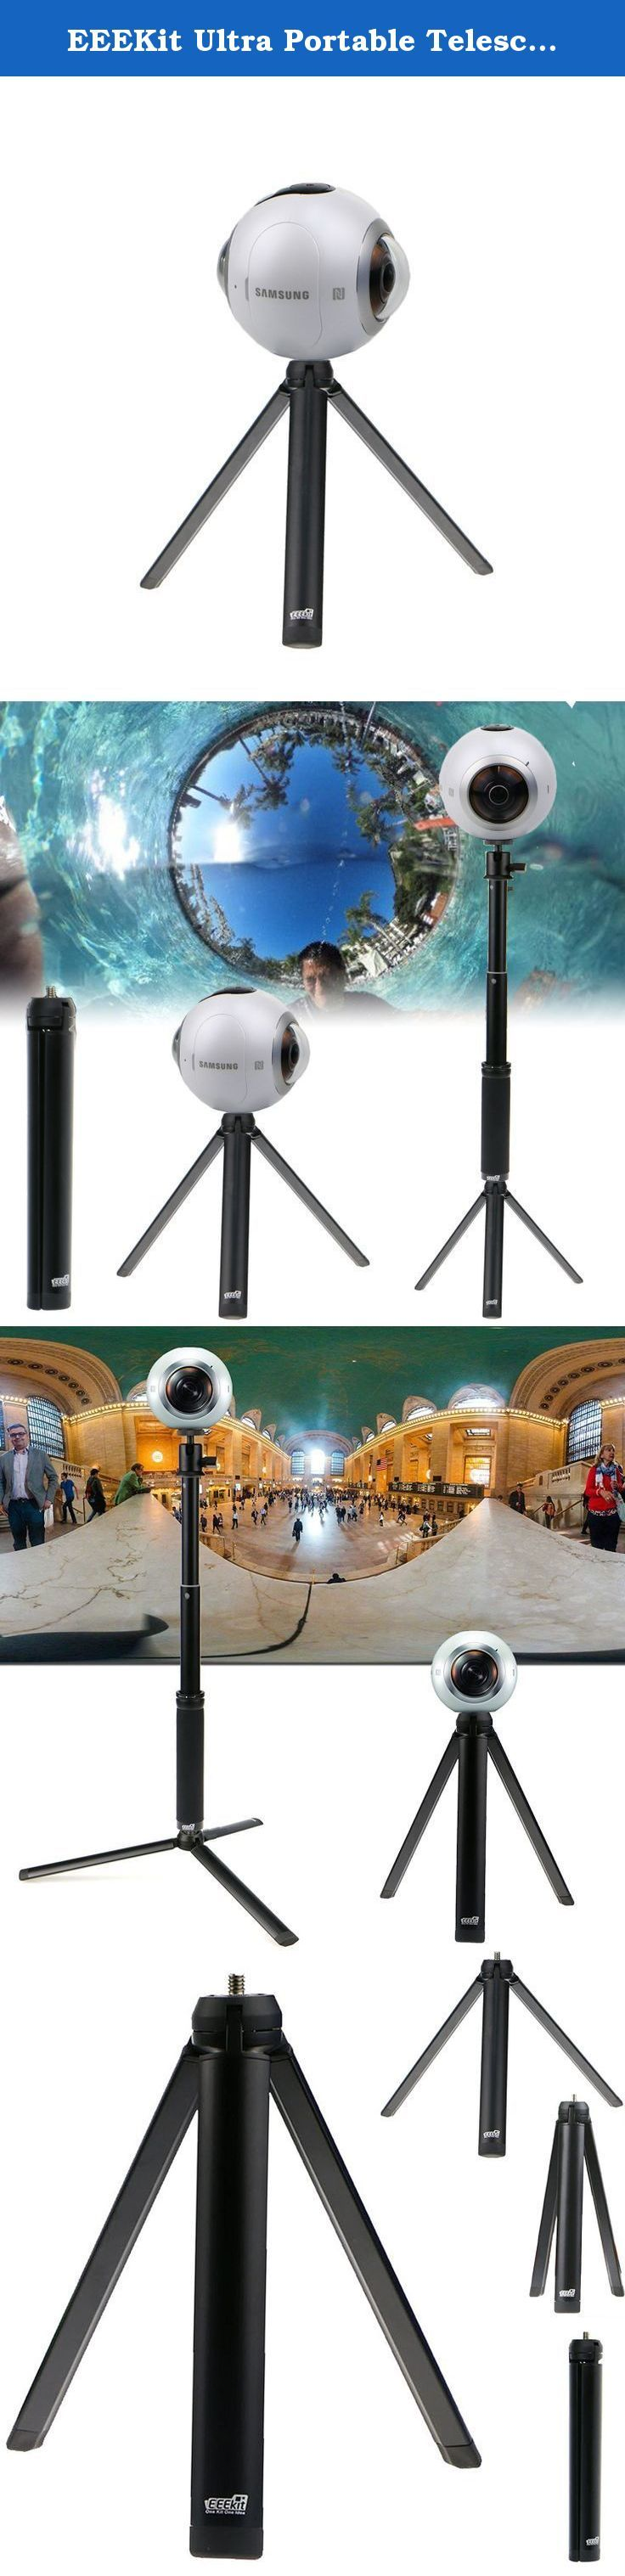 EEEKit Ultra Portable Telescopic Mini Table Top Tripod Stand Grip Stabilizer for Samsung Gear 360 Camera. Kit Includes: 1 x Mini Tripod Stand Specifics: Length: 3.15 inch (8 cm) Folded Legs made of aluminum with rubber feet. Ideal for setting up stationary shots on flat surfaces. Can be attached to Monopod for higher elevation and wider shots. .